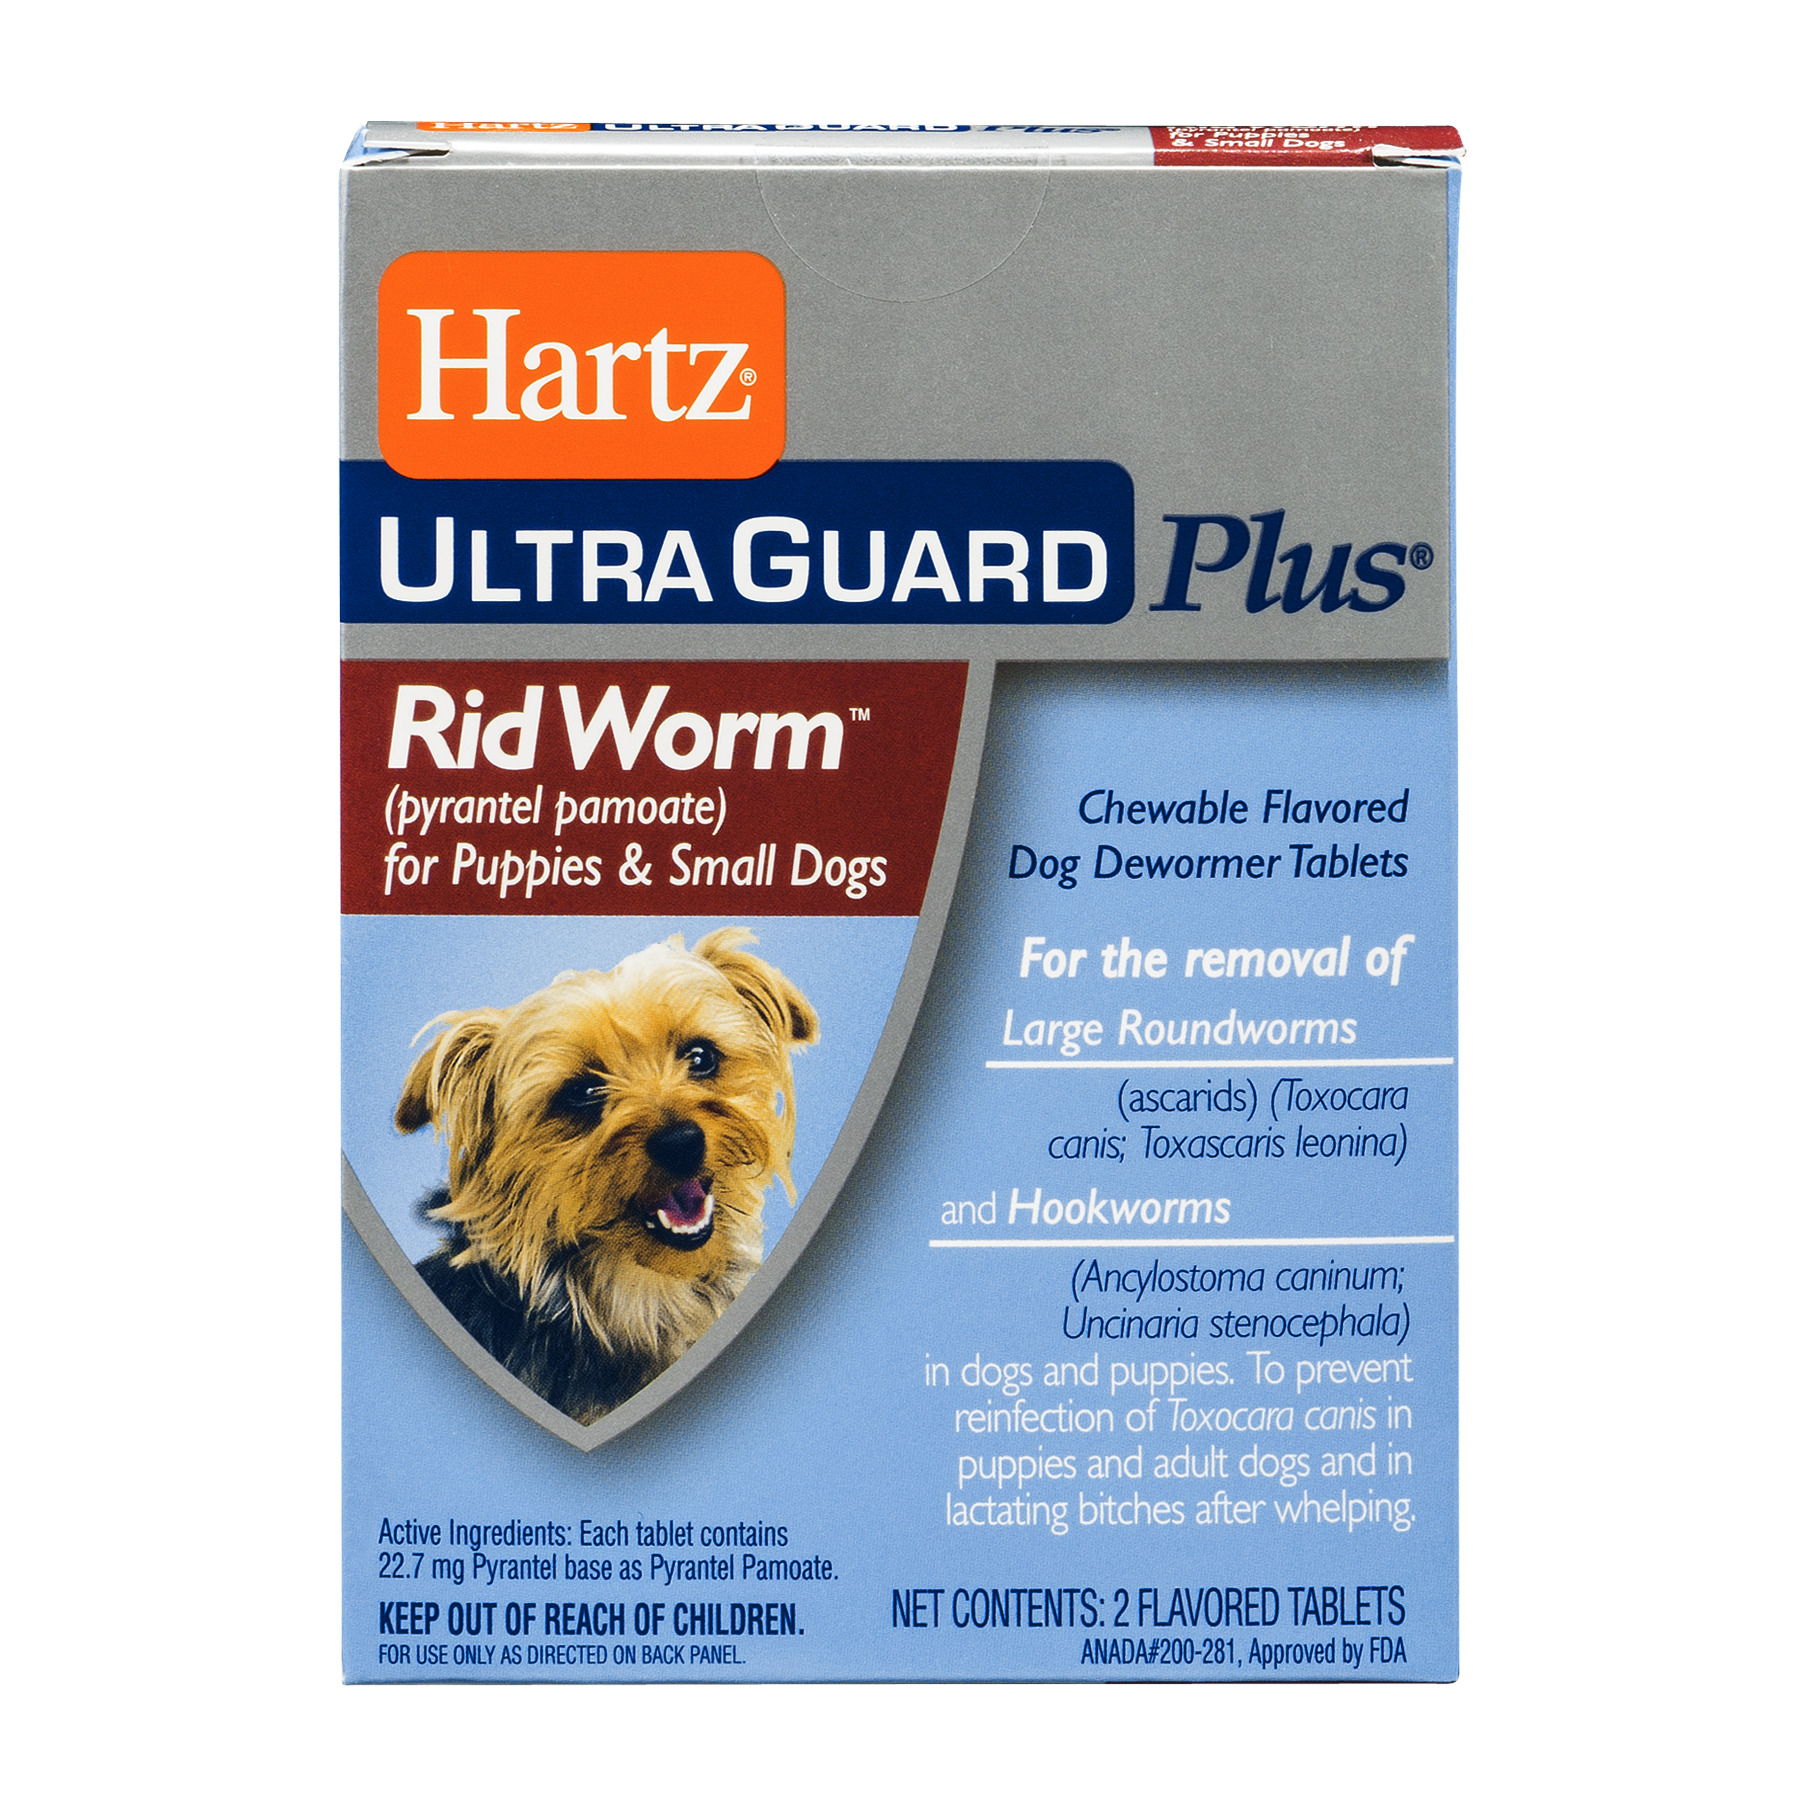 Hartz Ultraguard Plus Rid Worm Tablets For Small Dogs Walmartcom